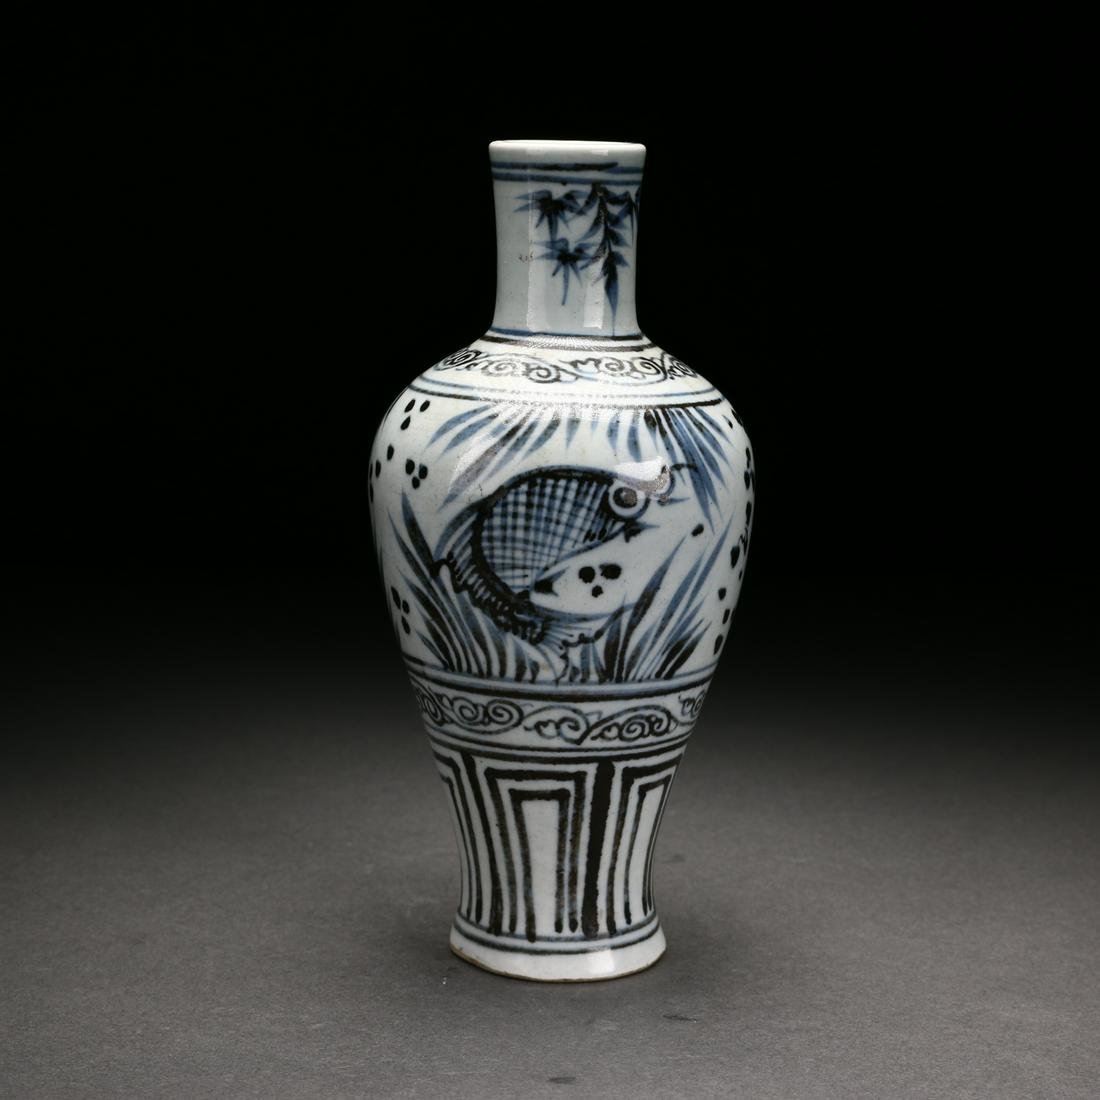 A Chinese Antique Blue and White Porcelain Vase